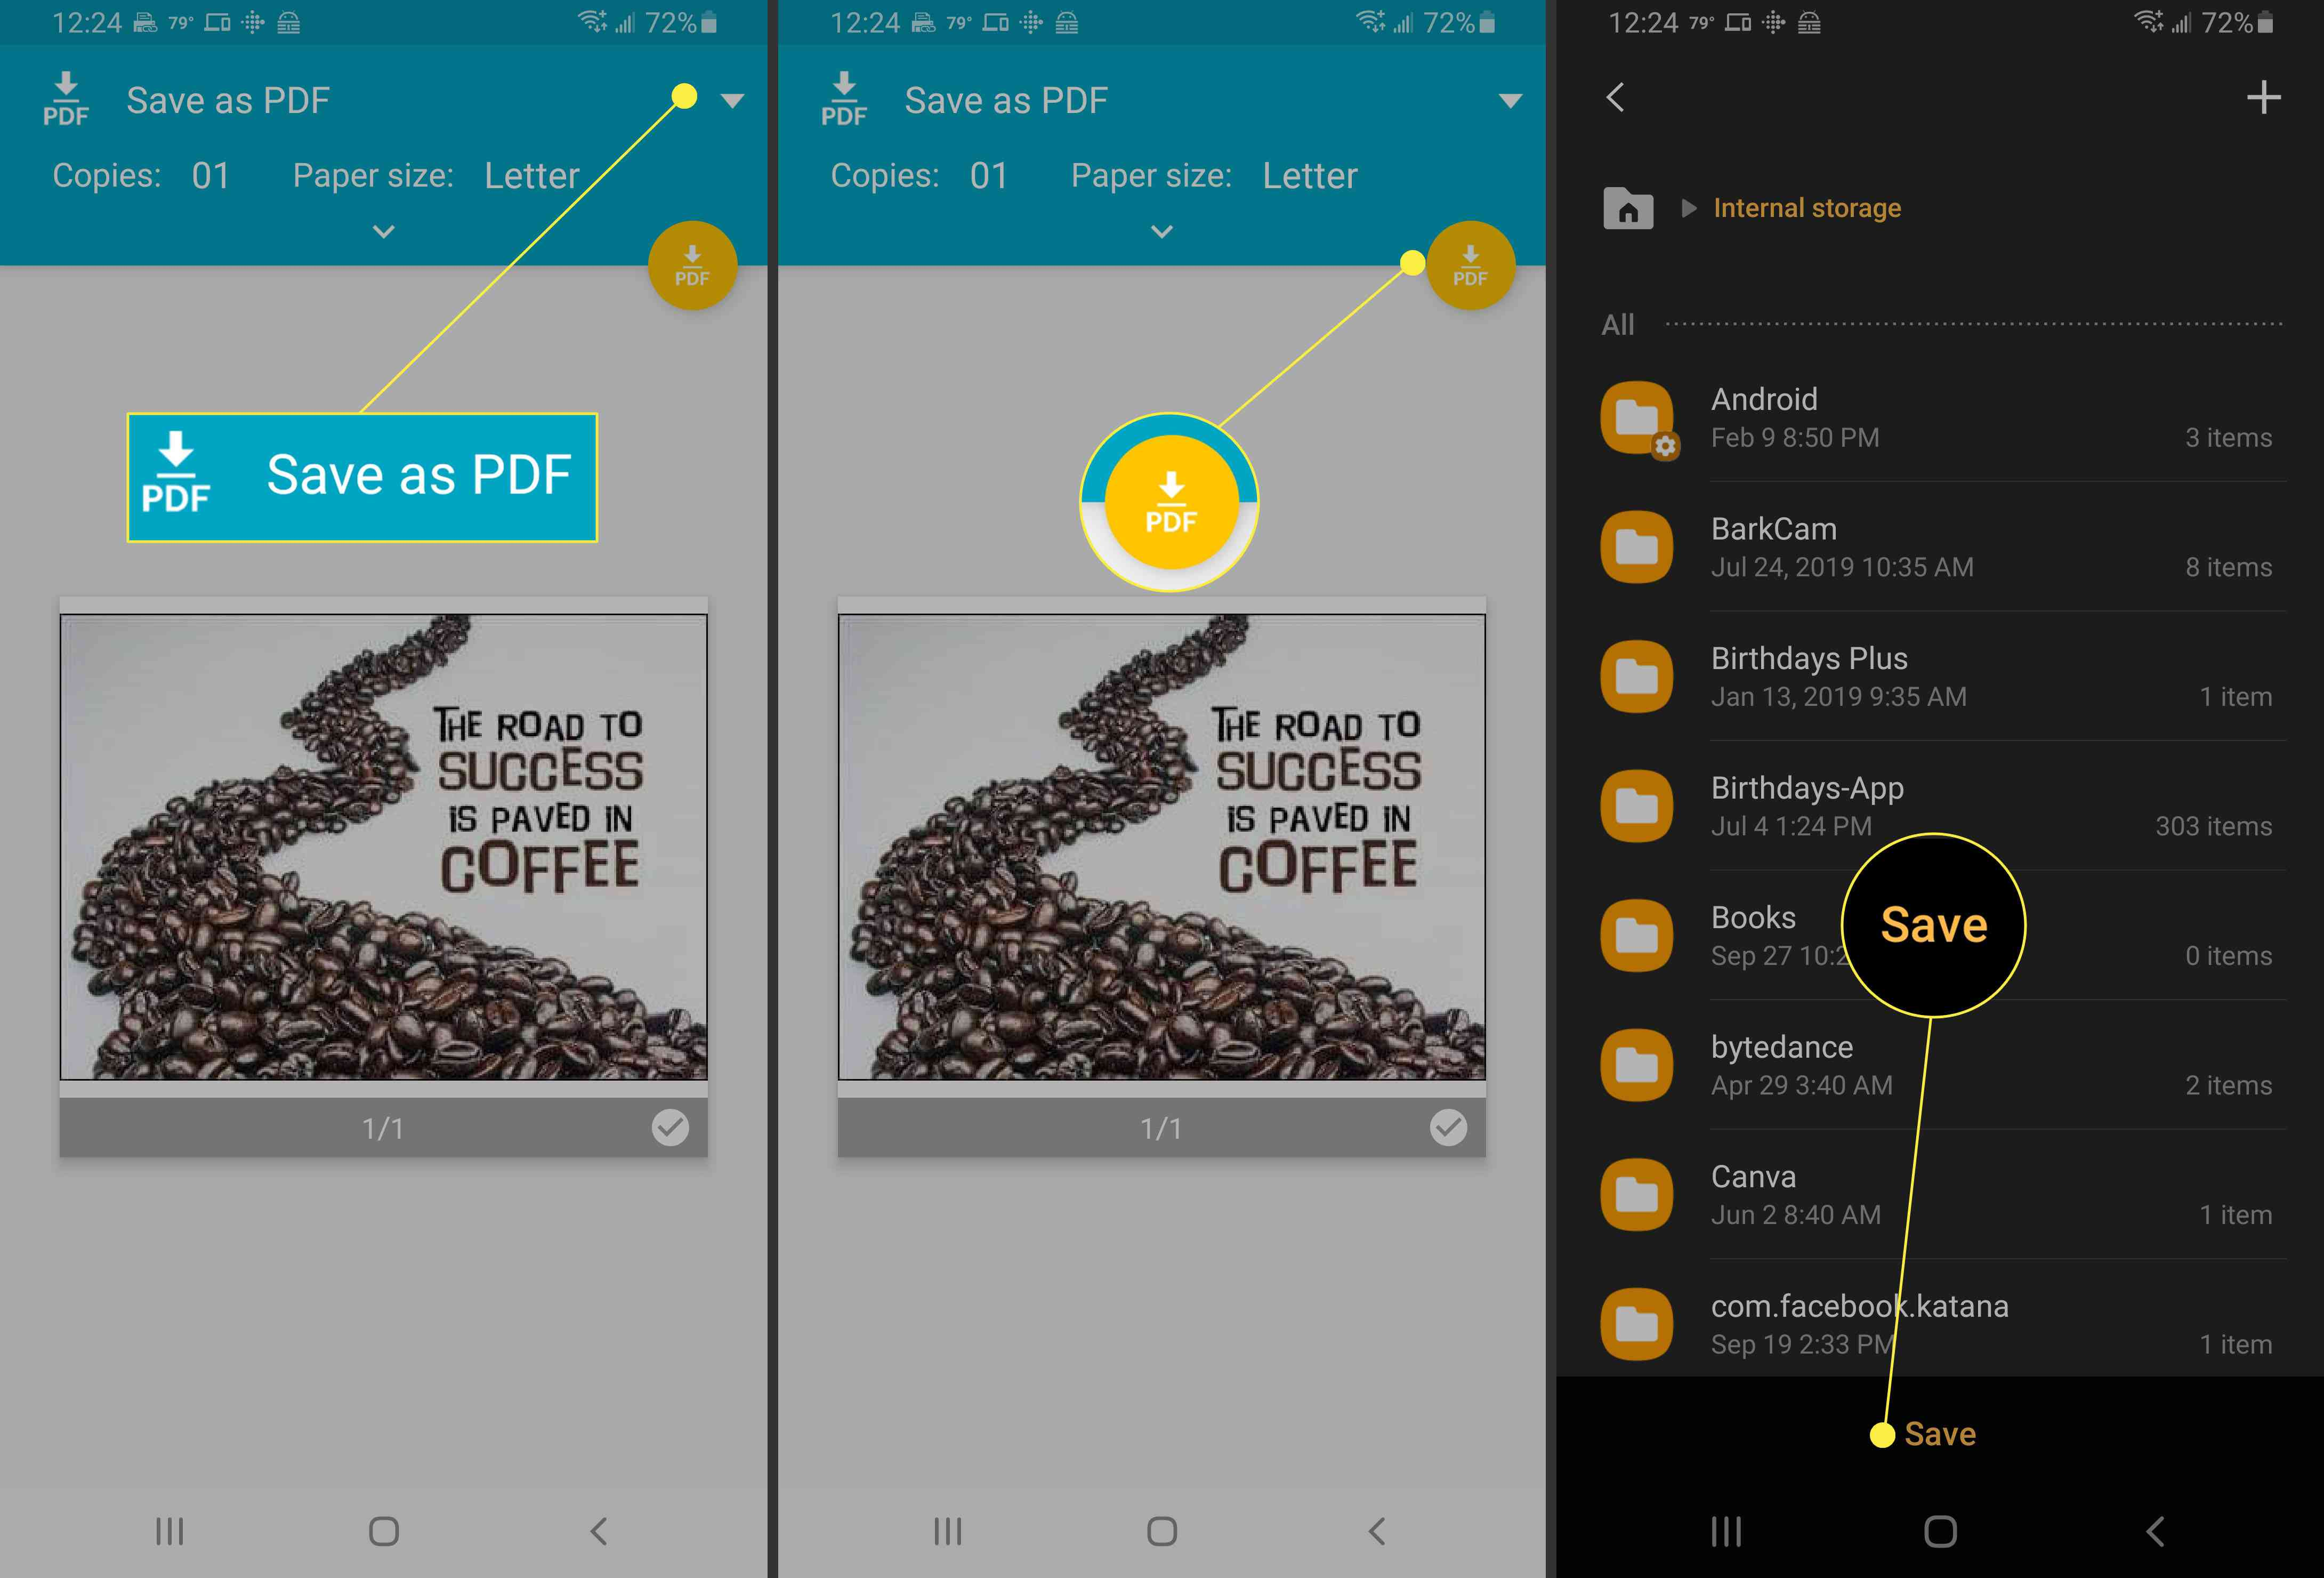 Saving the PDF in Android.